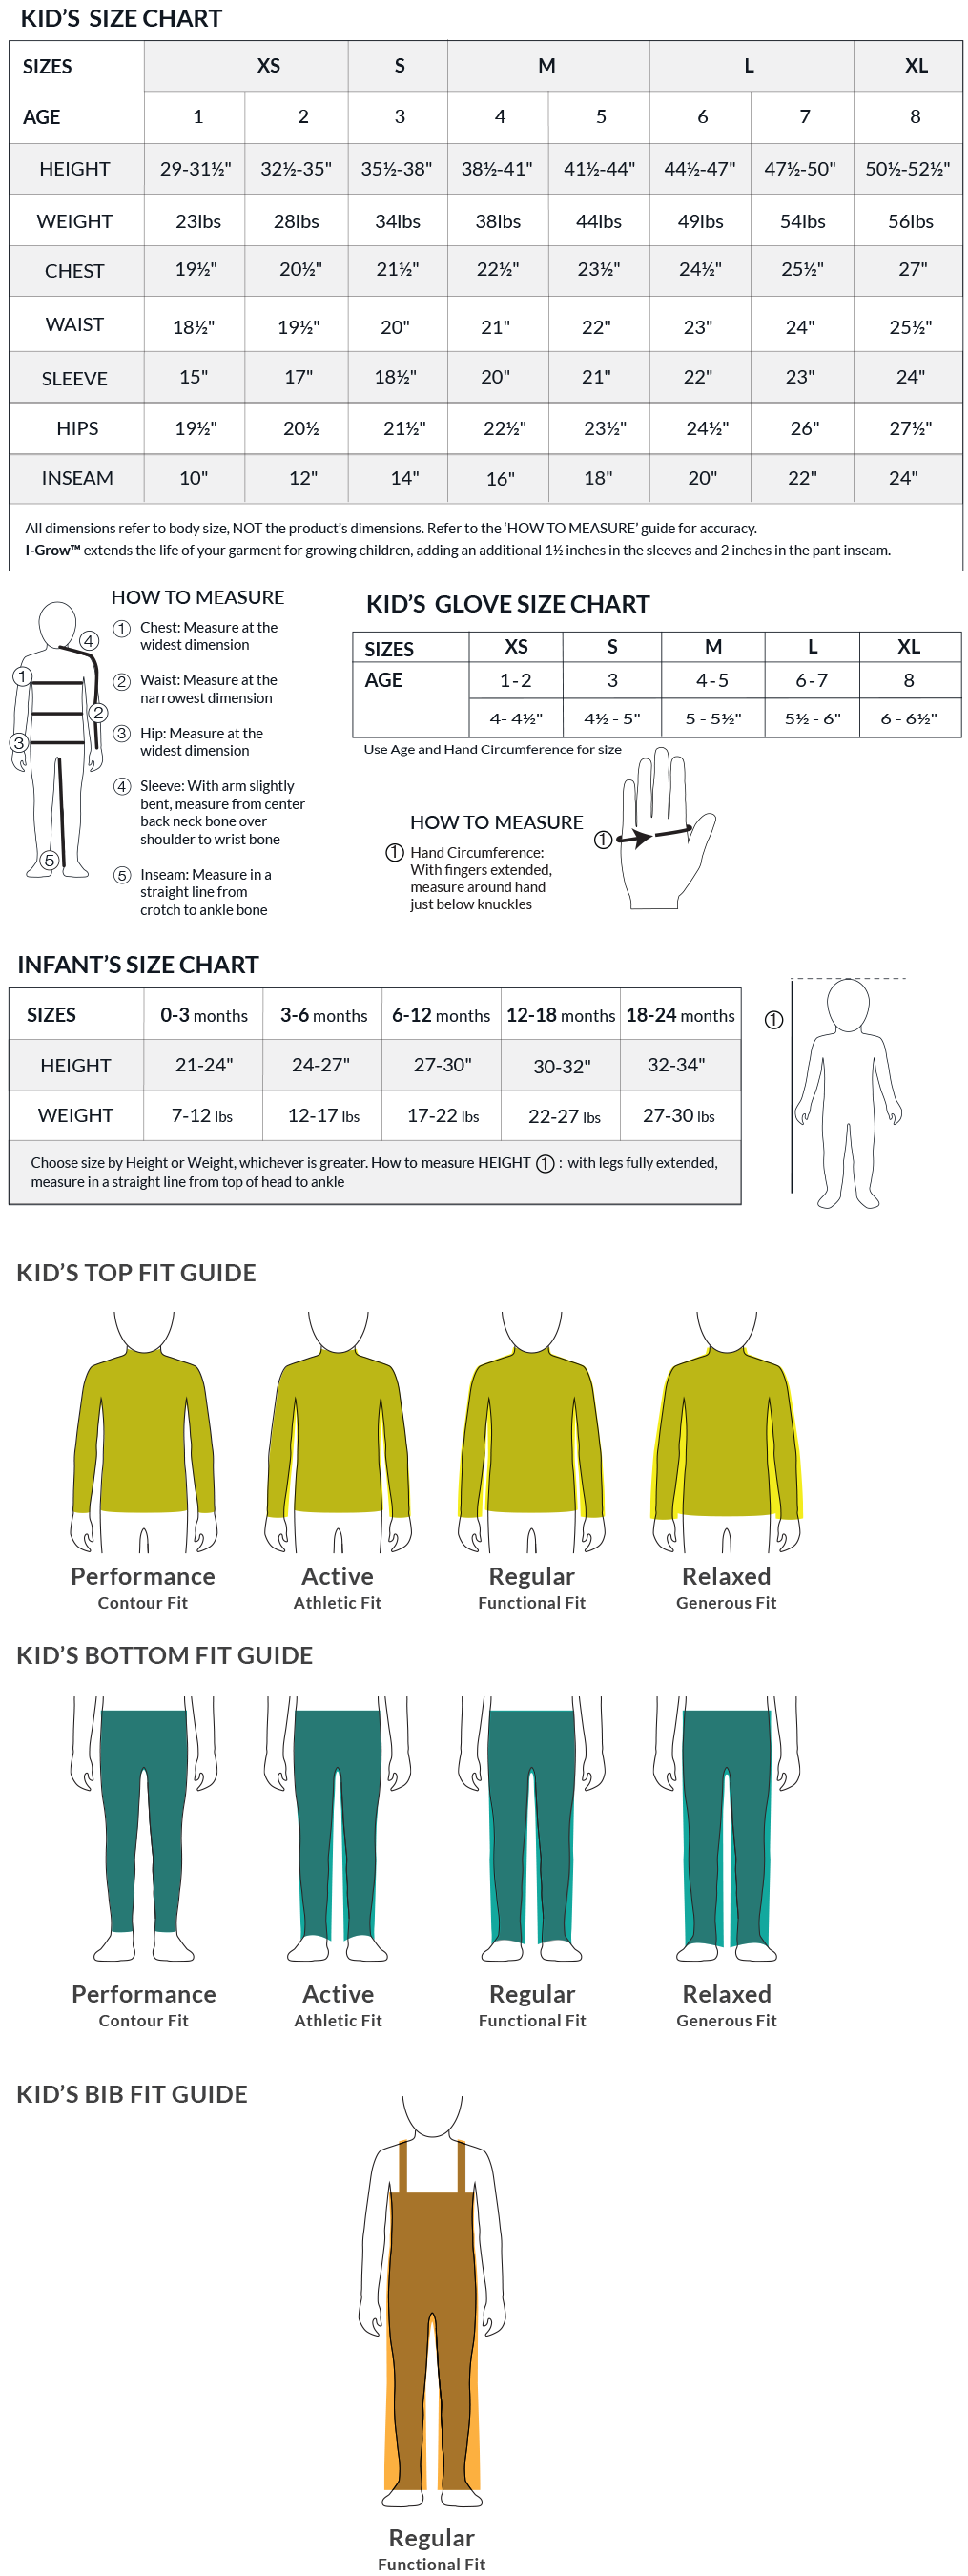 Kids Sizing Chart and Fit Guide